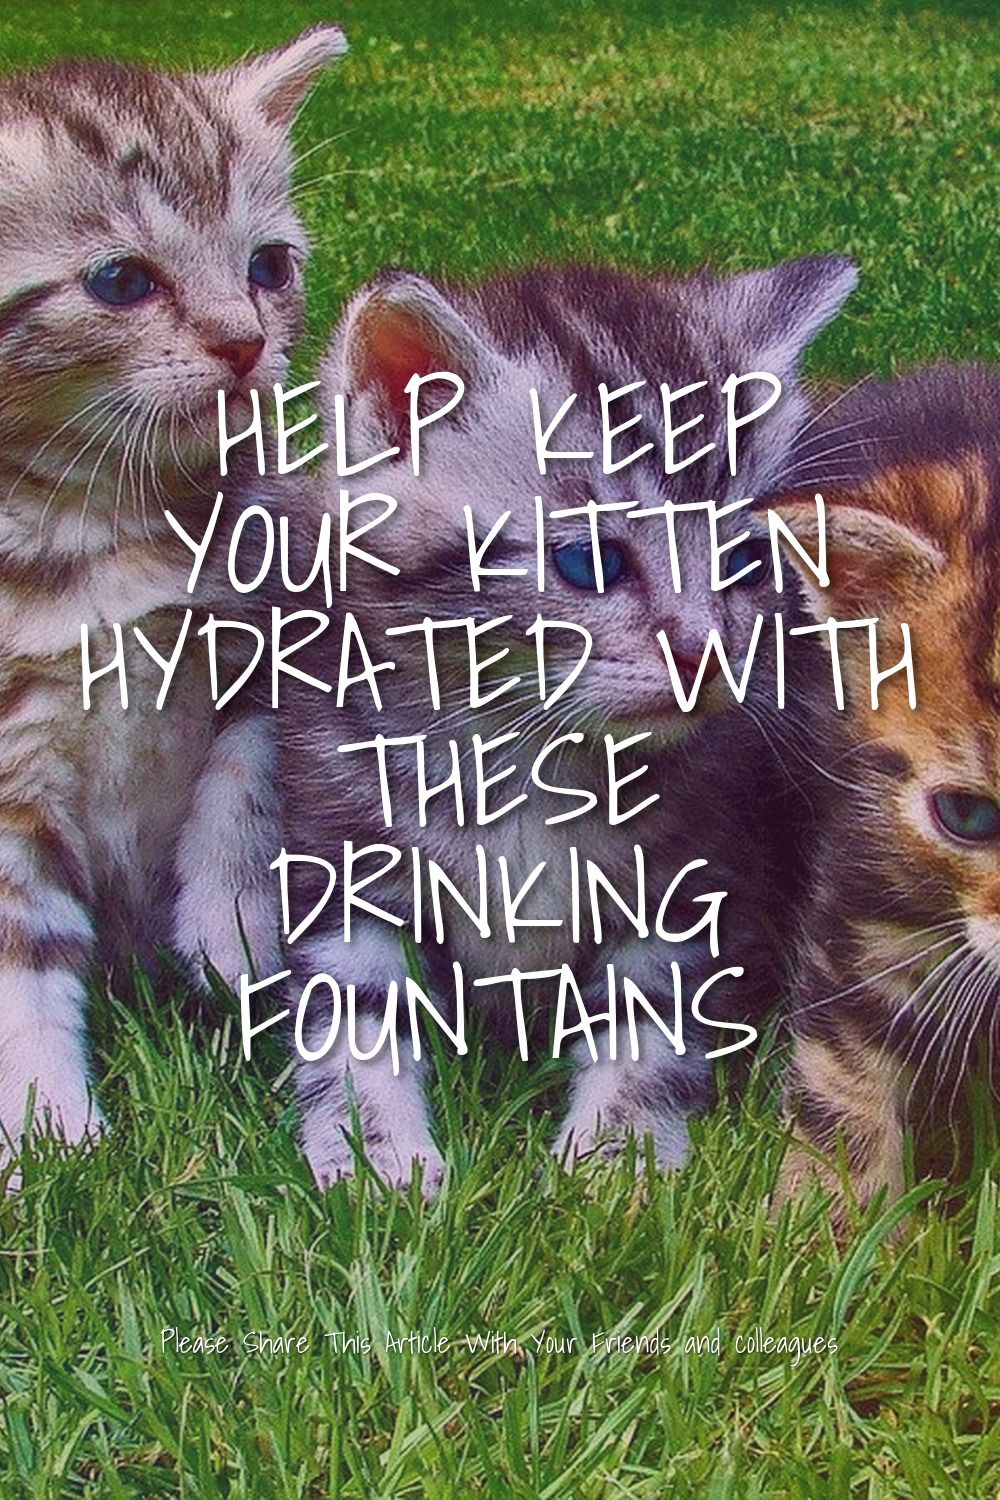 Help Keep Your Kitten Hydrated With These Drinking Fountains In 2020 Drinking Water Fountain Pet Water Fountain Fountains